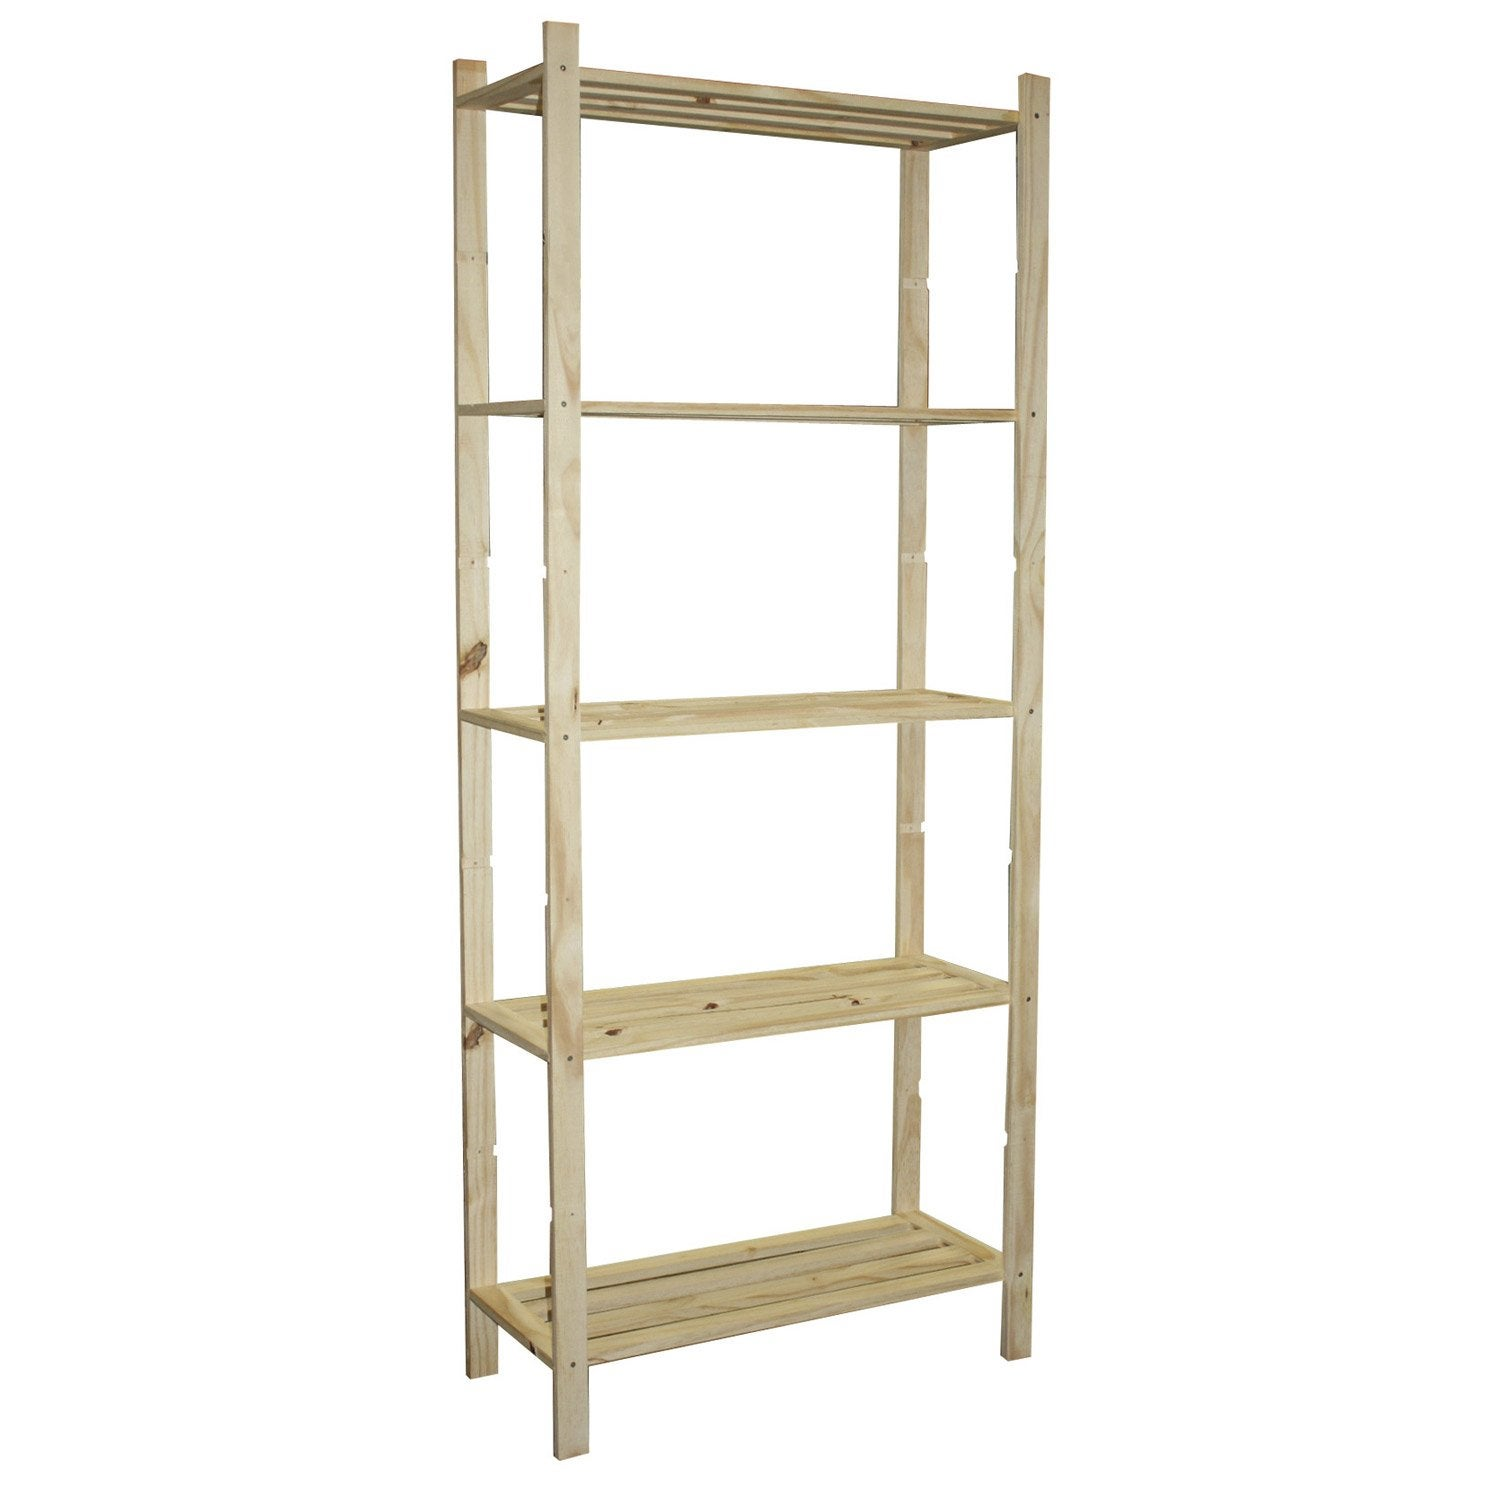 Etag re pin 5 tablettes x x cm leroy merlin - Etagere garage leroy merlin ...